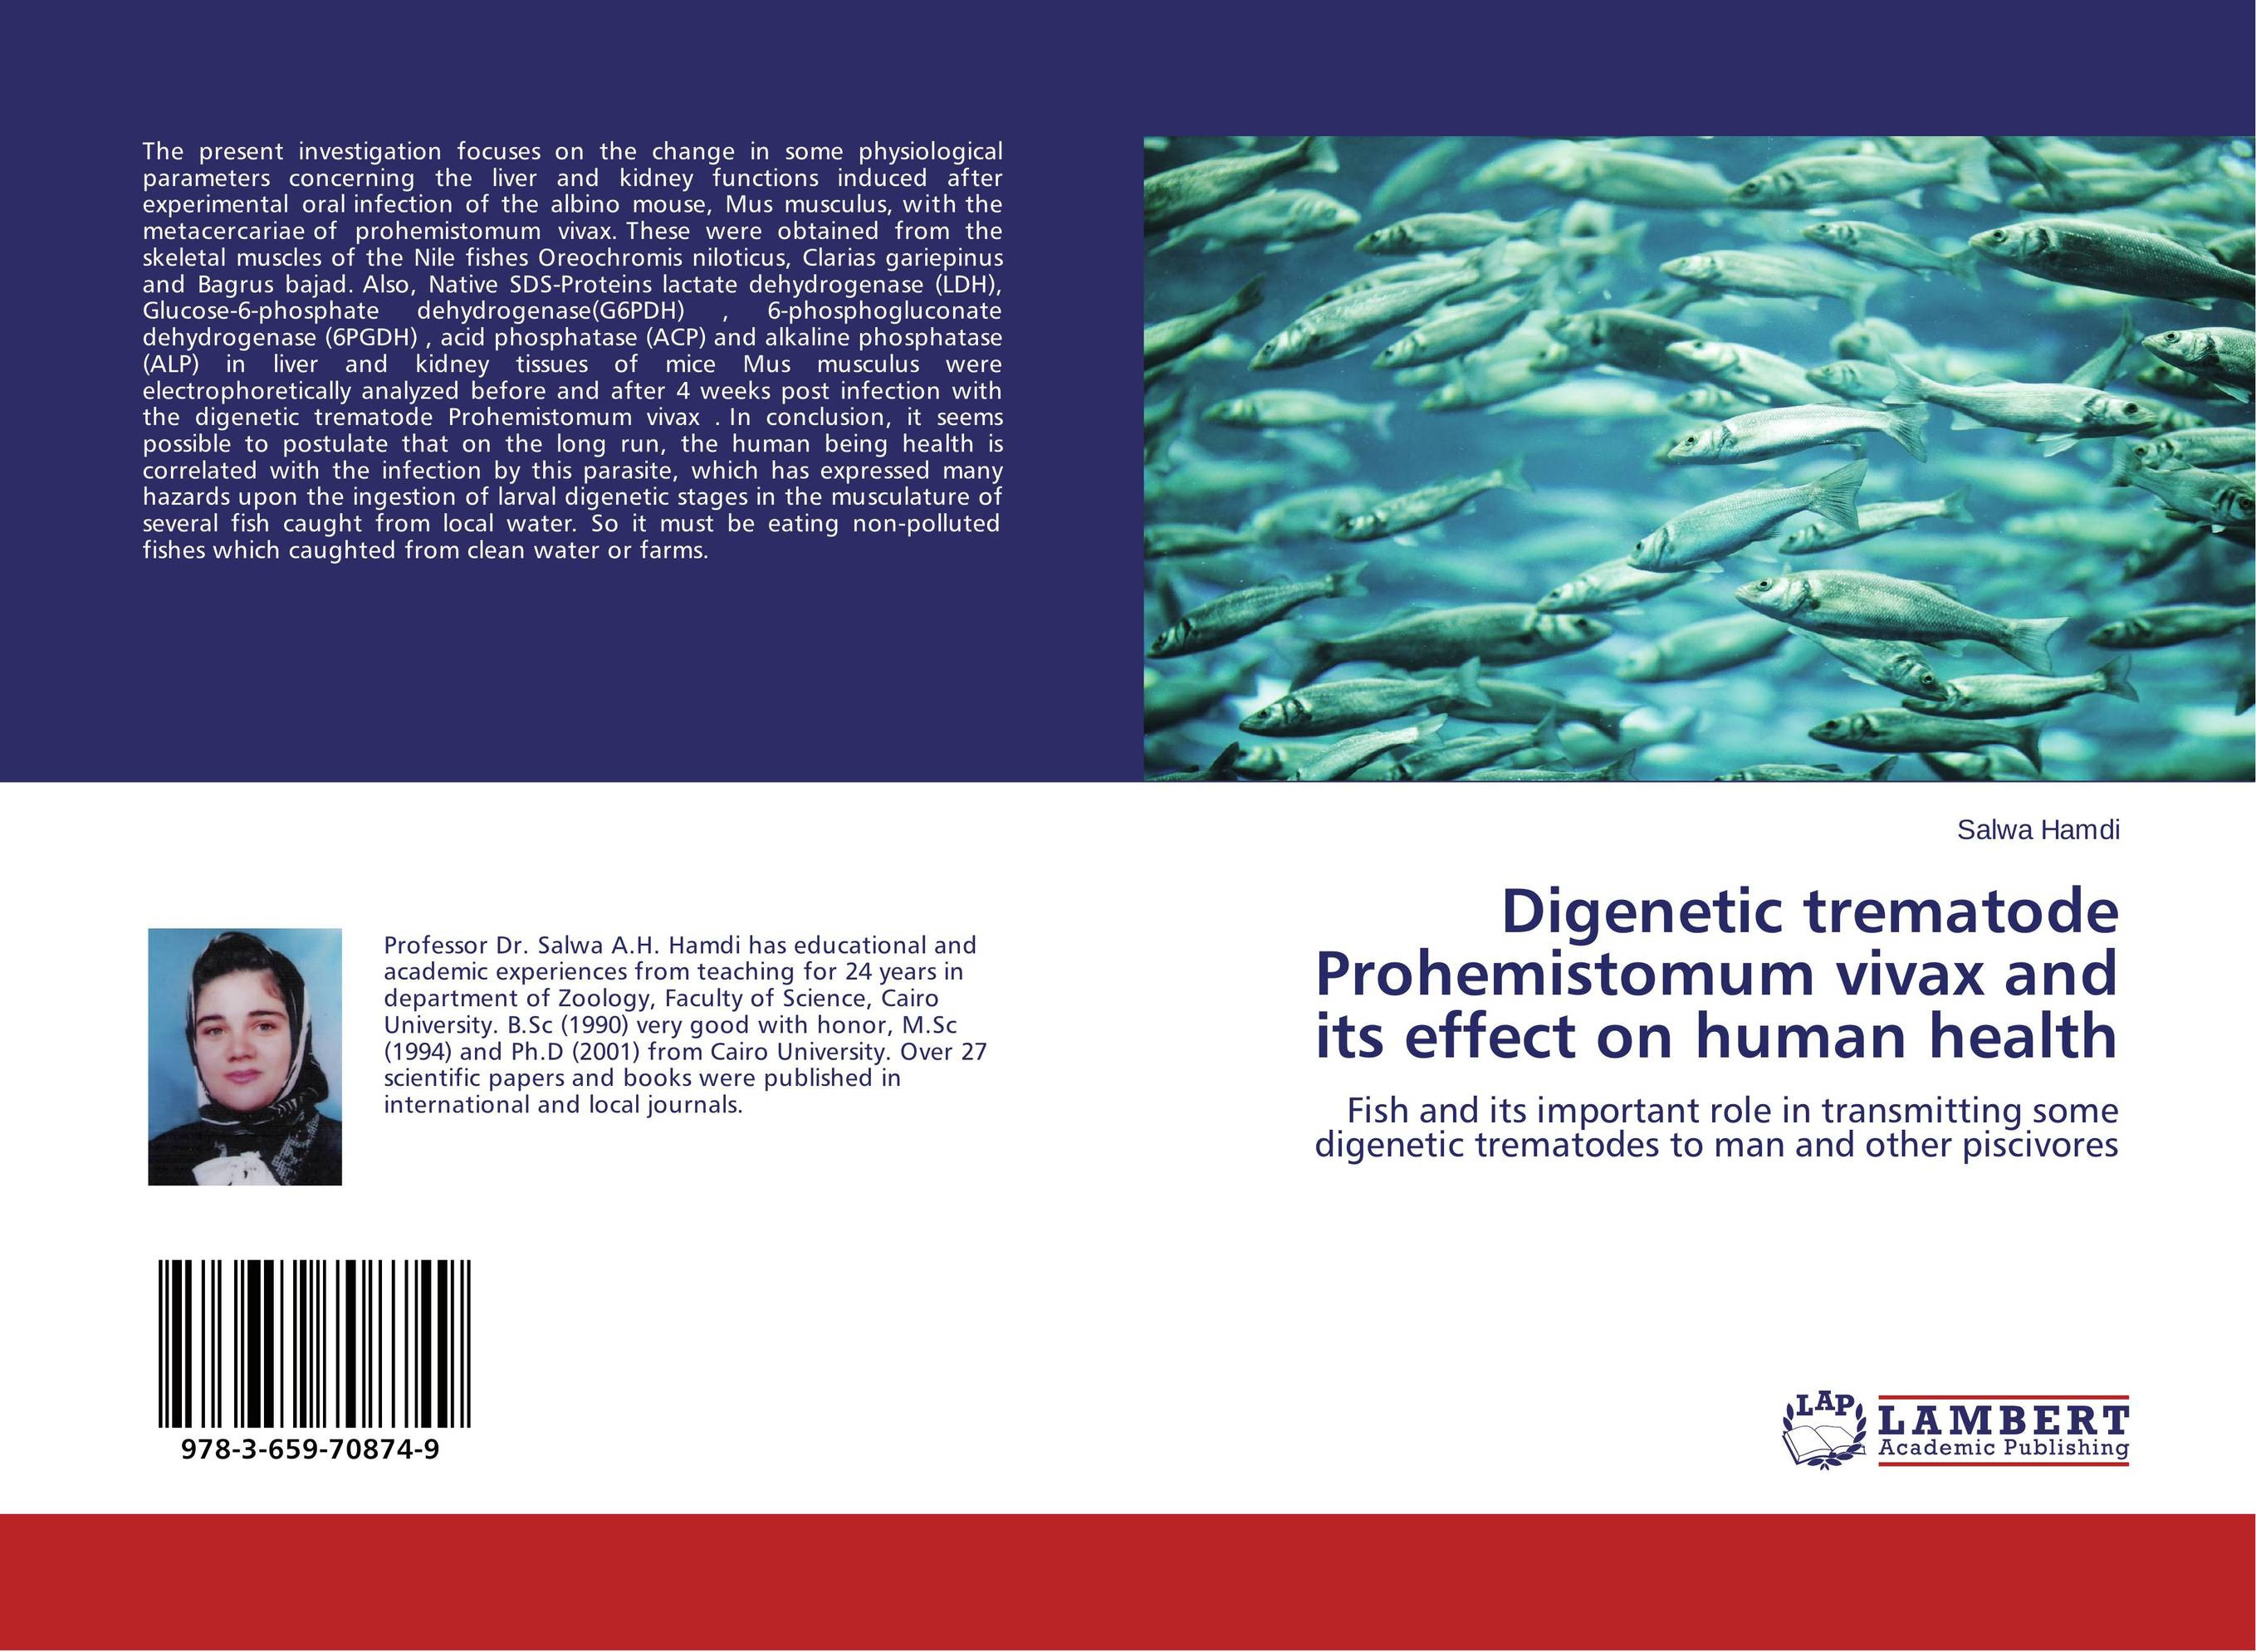 Digenetic trematode Prohemistomum vivax and its effect on human health biomonitoring with clarias gariepinus